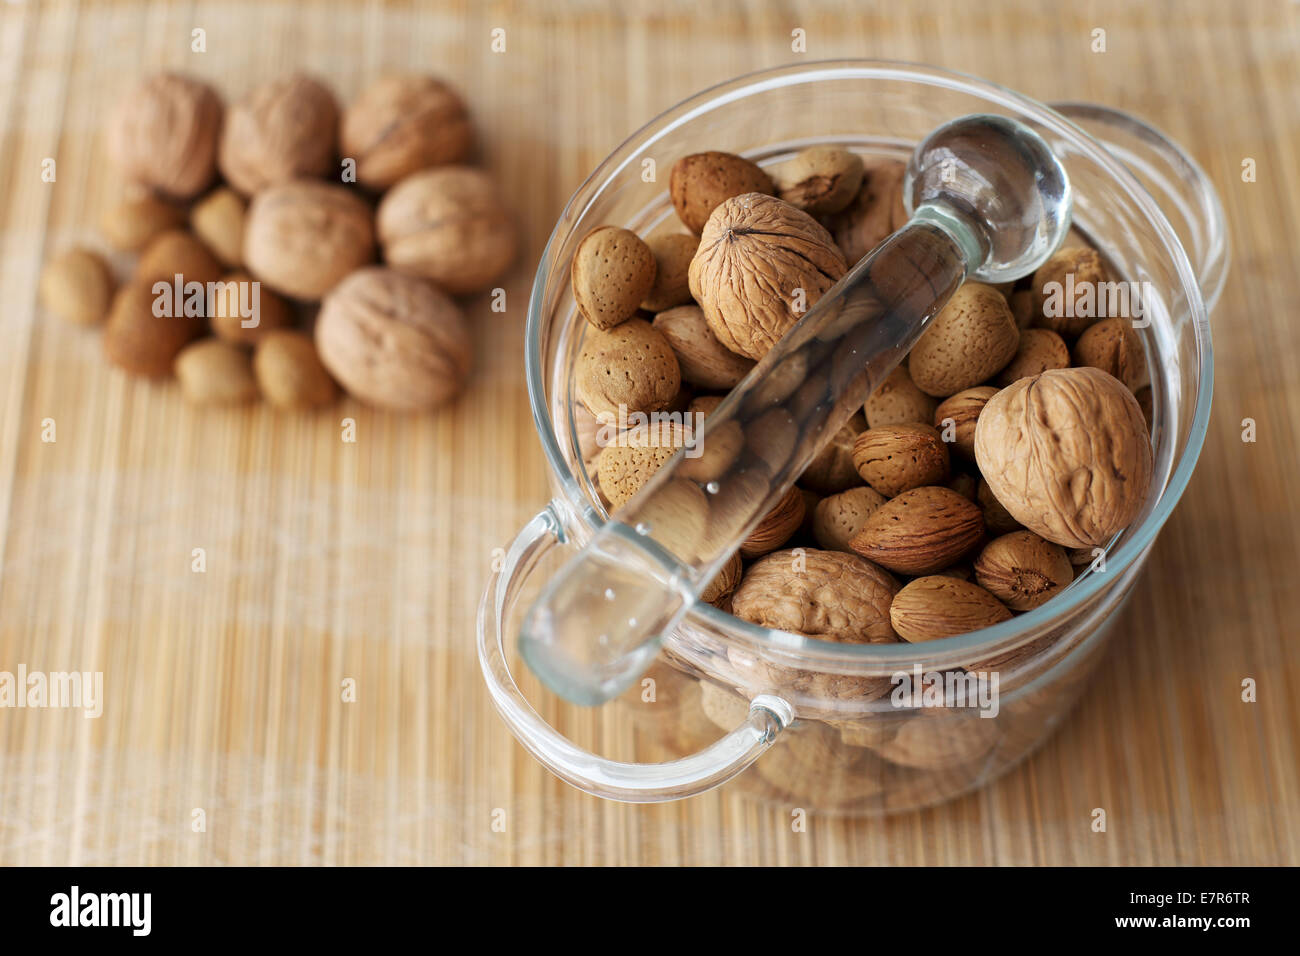 Apricot Kernel and Walnut in a Glass Bowl - Stock Image